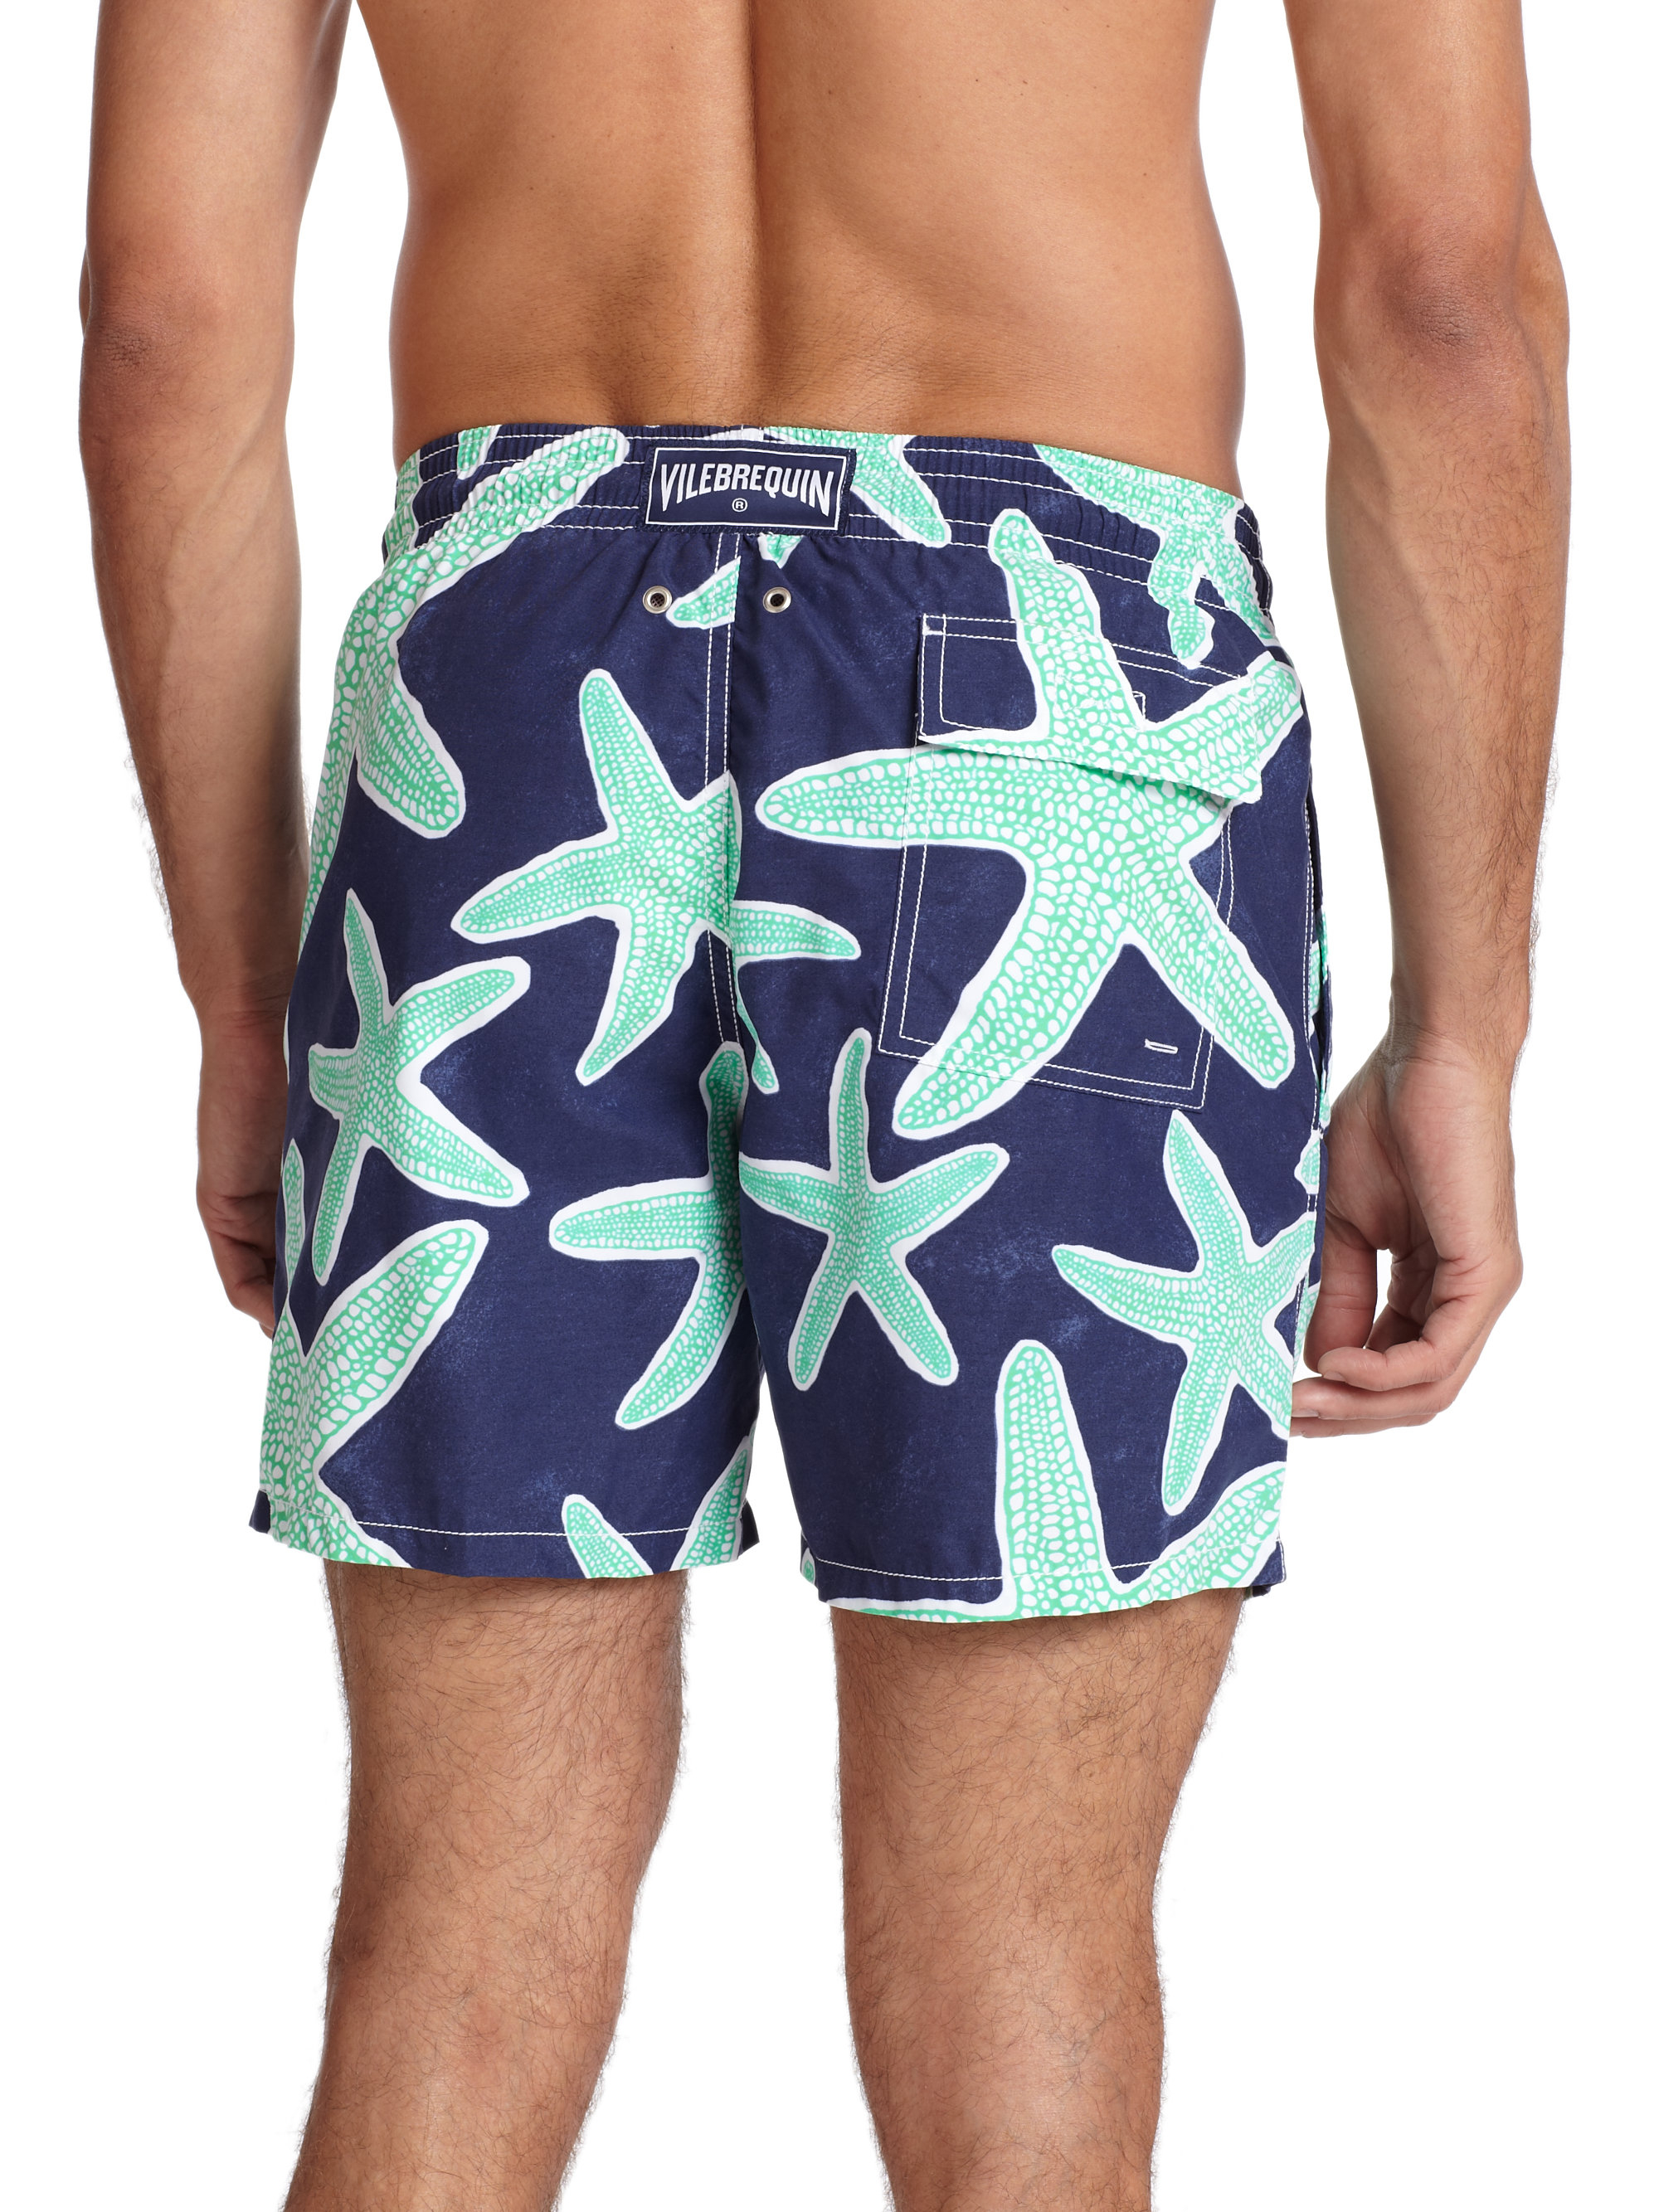 Popular For Sale Latest Collections For Sale Star Fish Swimshorts Vilebrequin xpXi4b